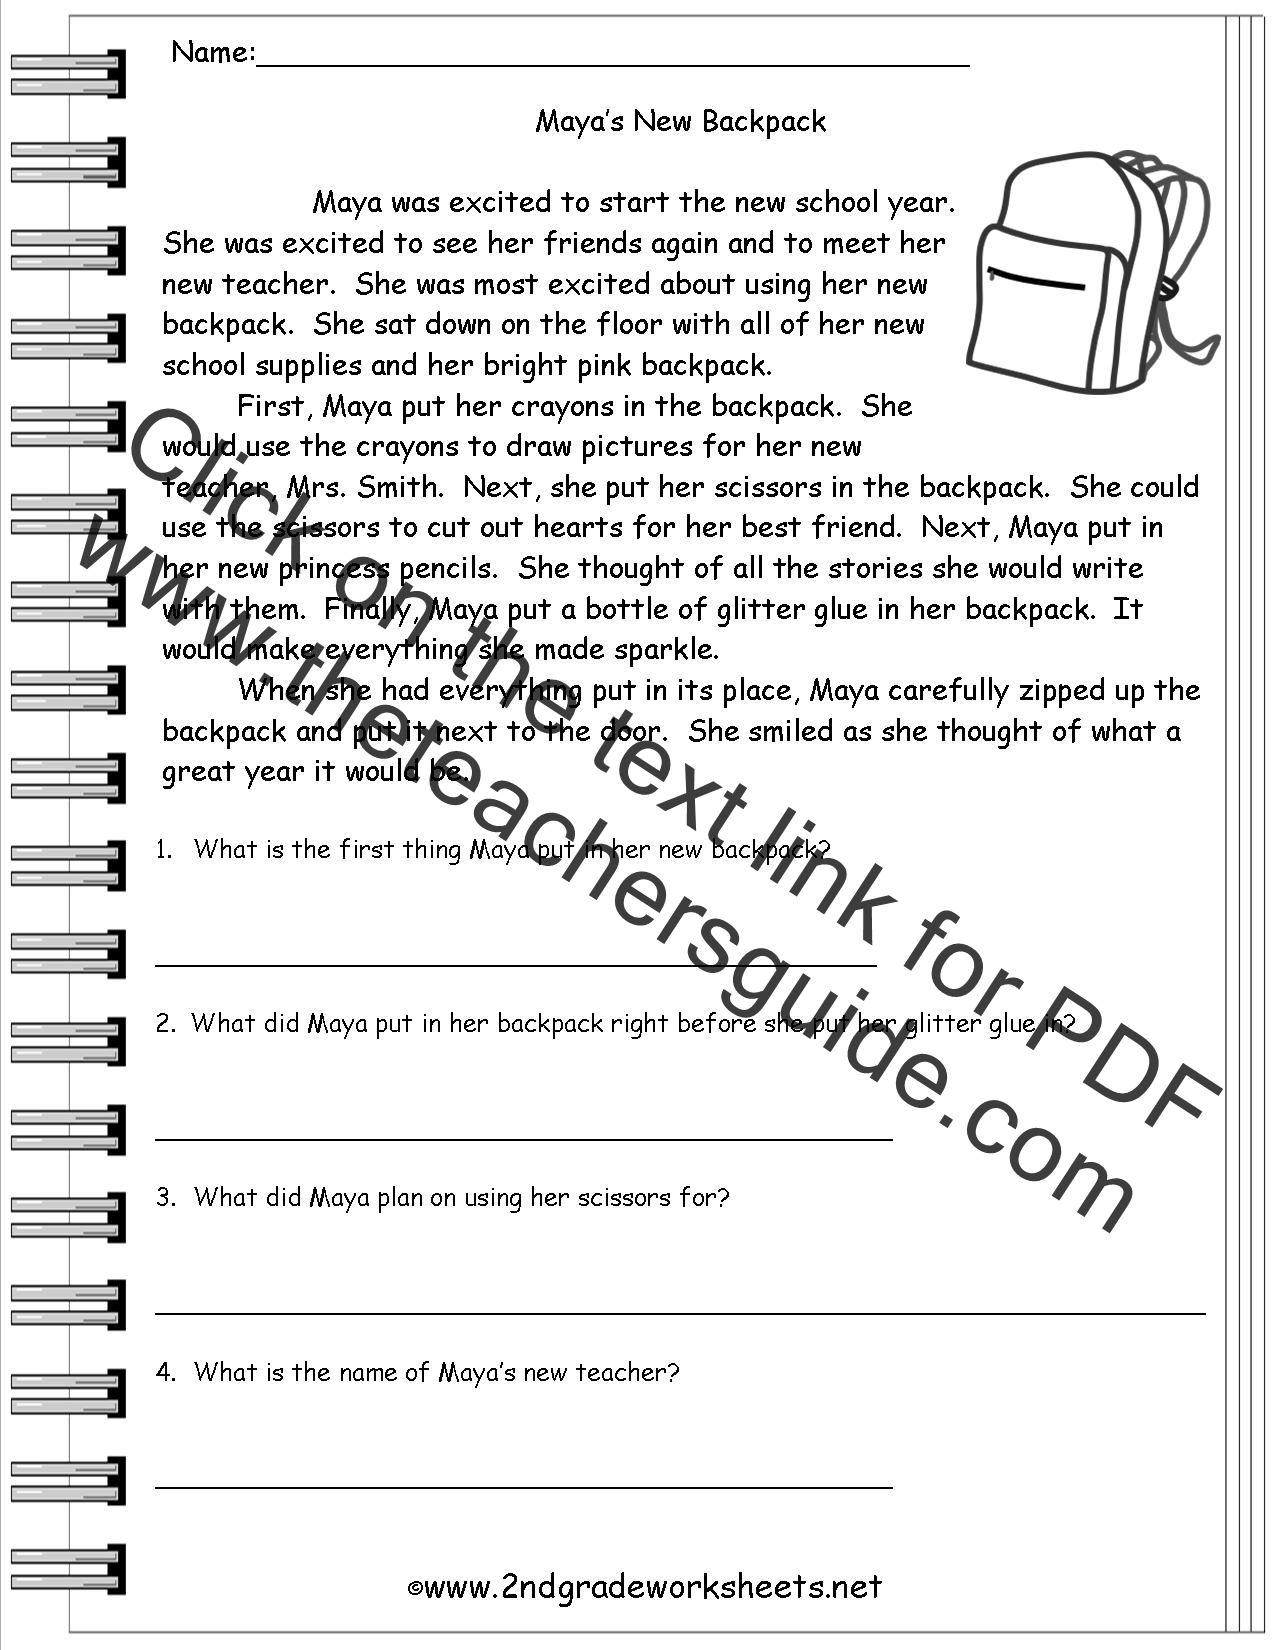 Printables Common Core Reading Comprehension Worksheets reading worksheeets literature worksheets common core